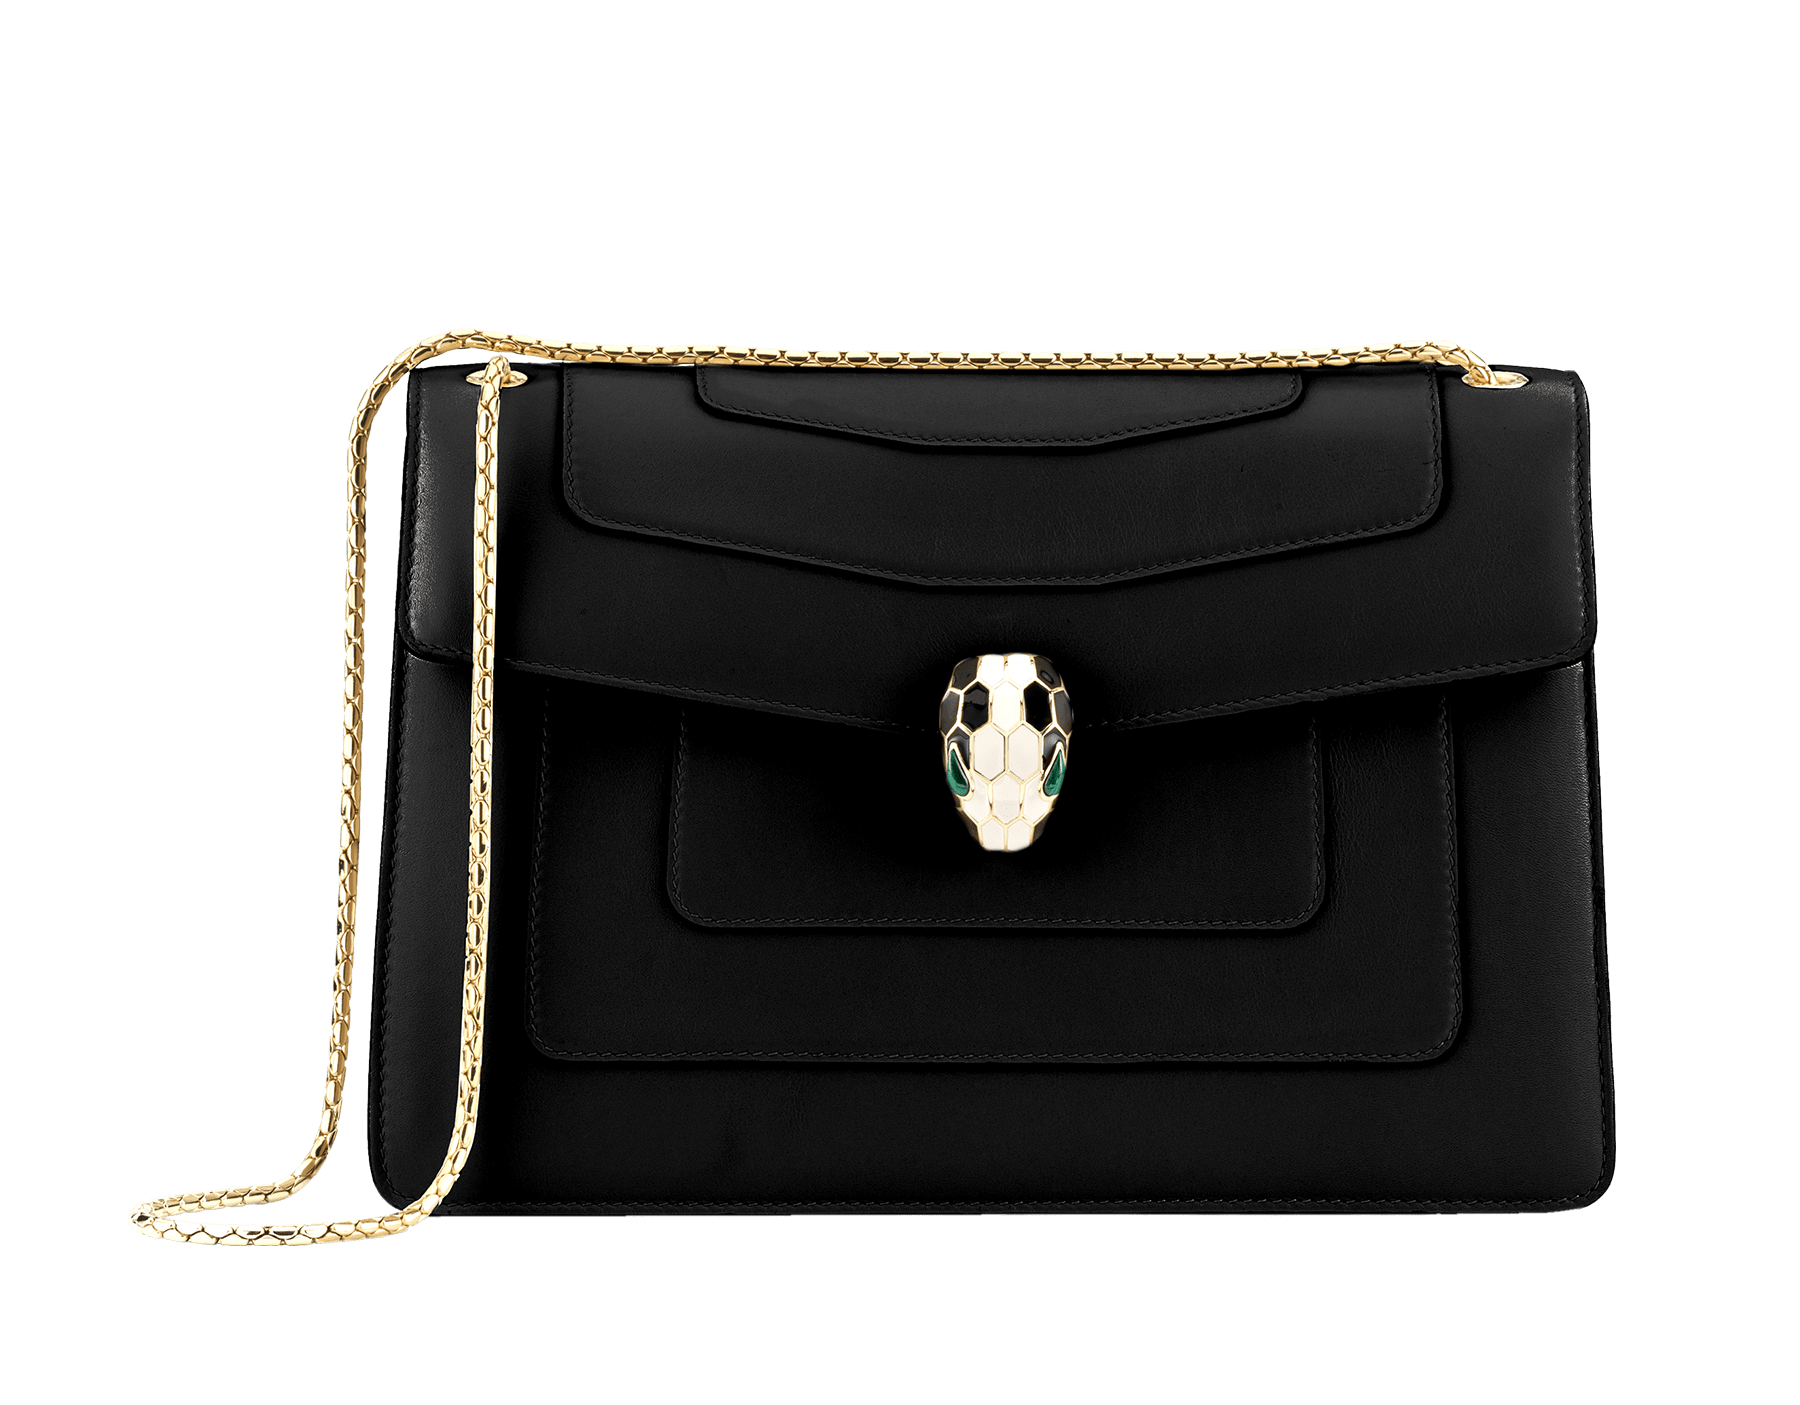 Black calf leather shoulder bag with brass light gold plated black and white enamel Serpenti head closure with malachite eyes. 35106 image 1